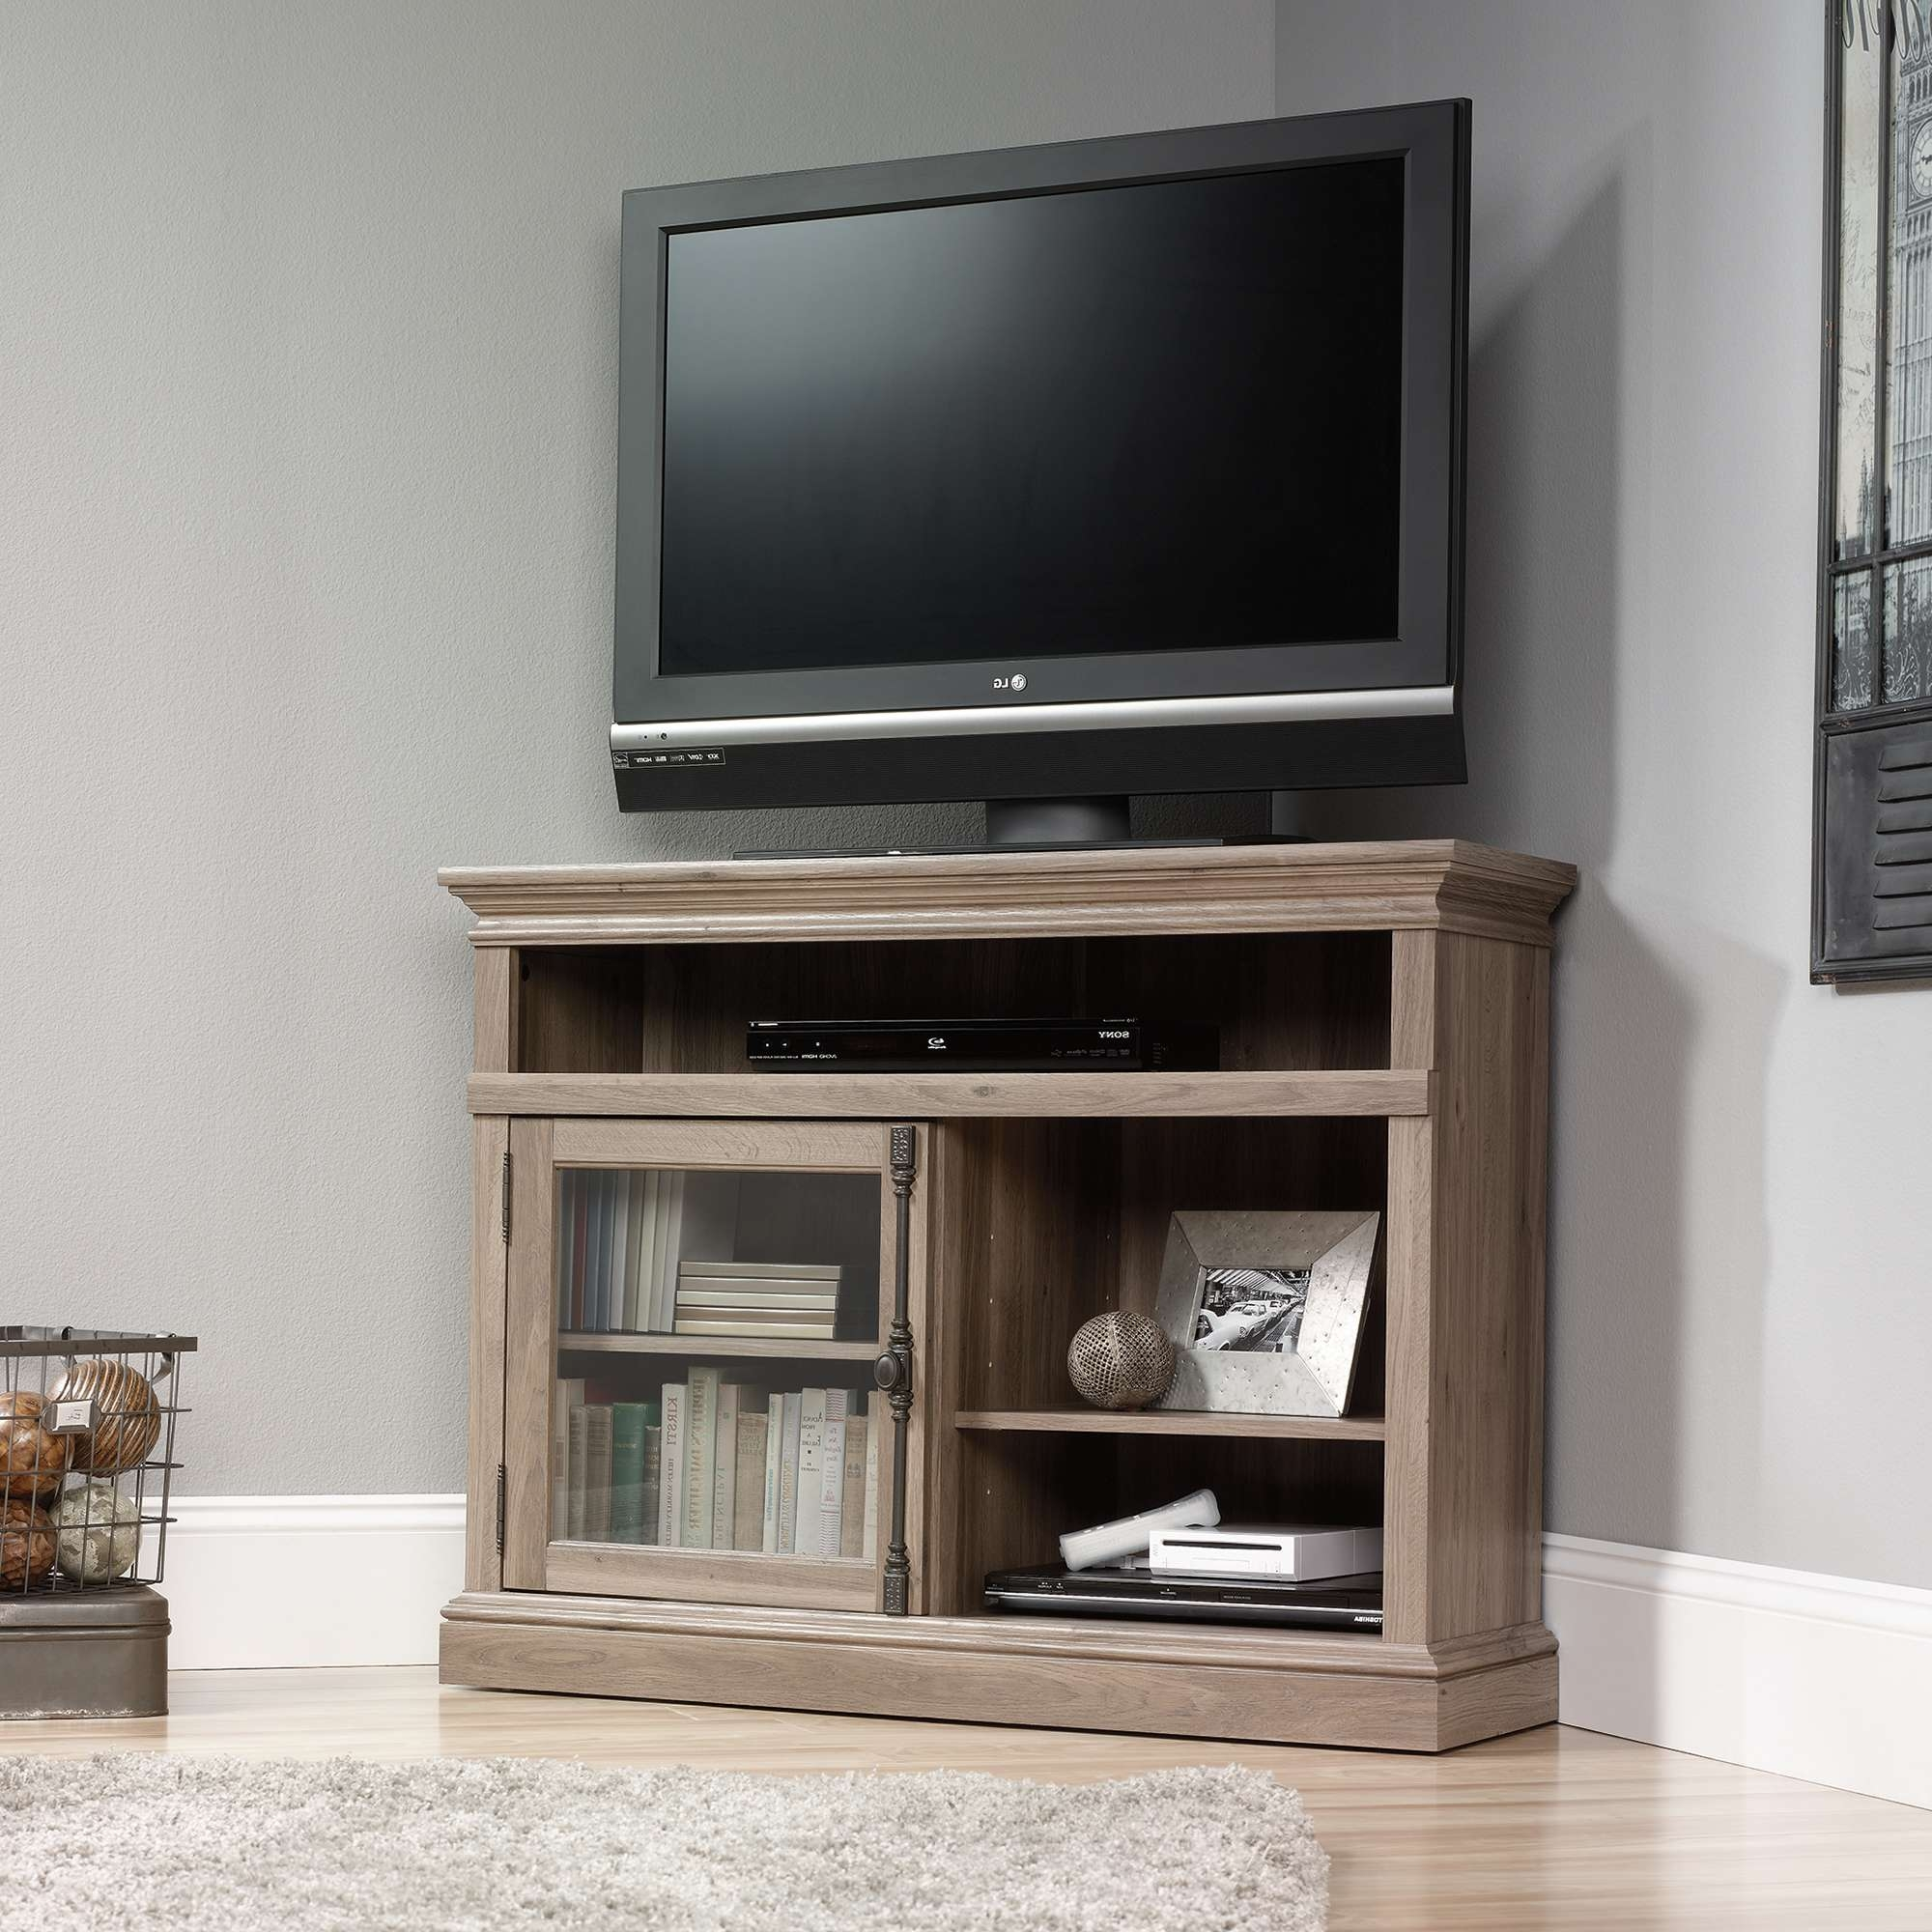 Barrister Lane | Corner Tv Stand | 414729 | Sauder Within Small Corner Tv Cabinets (View 1 of 20)